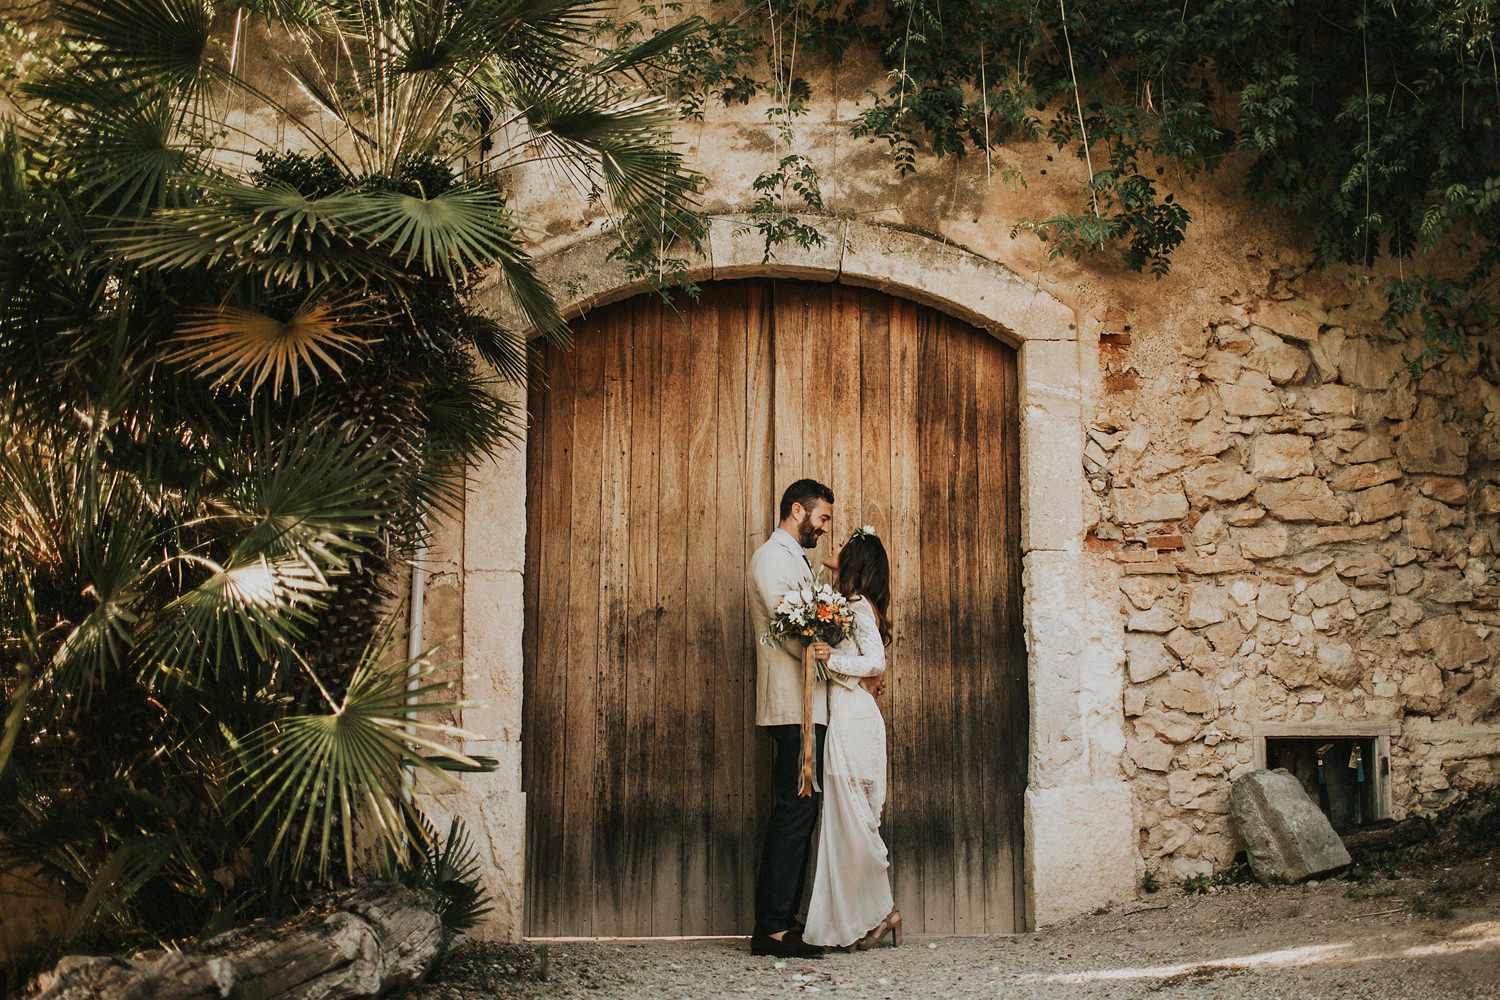 barcelona destination wedding photographer-Edit.jpg